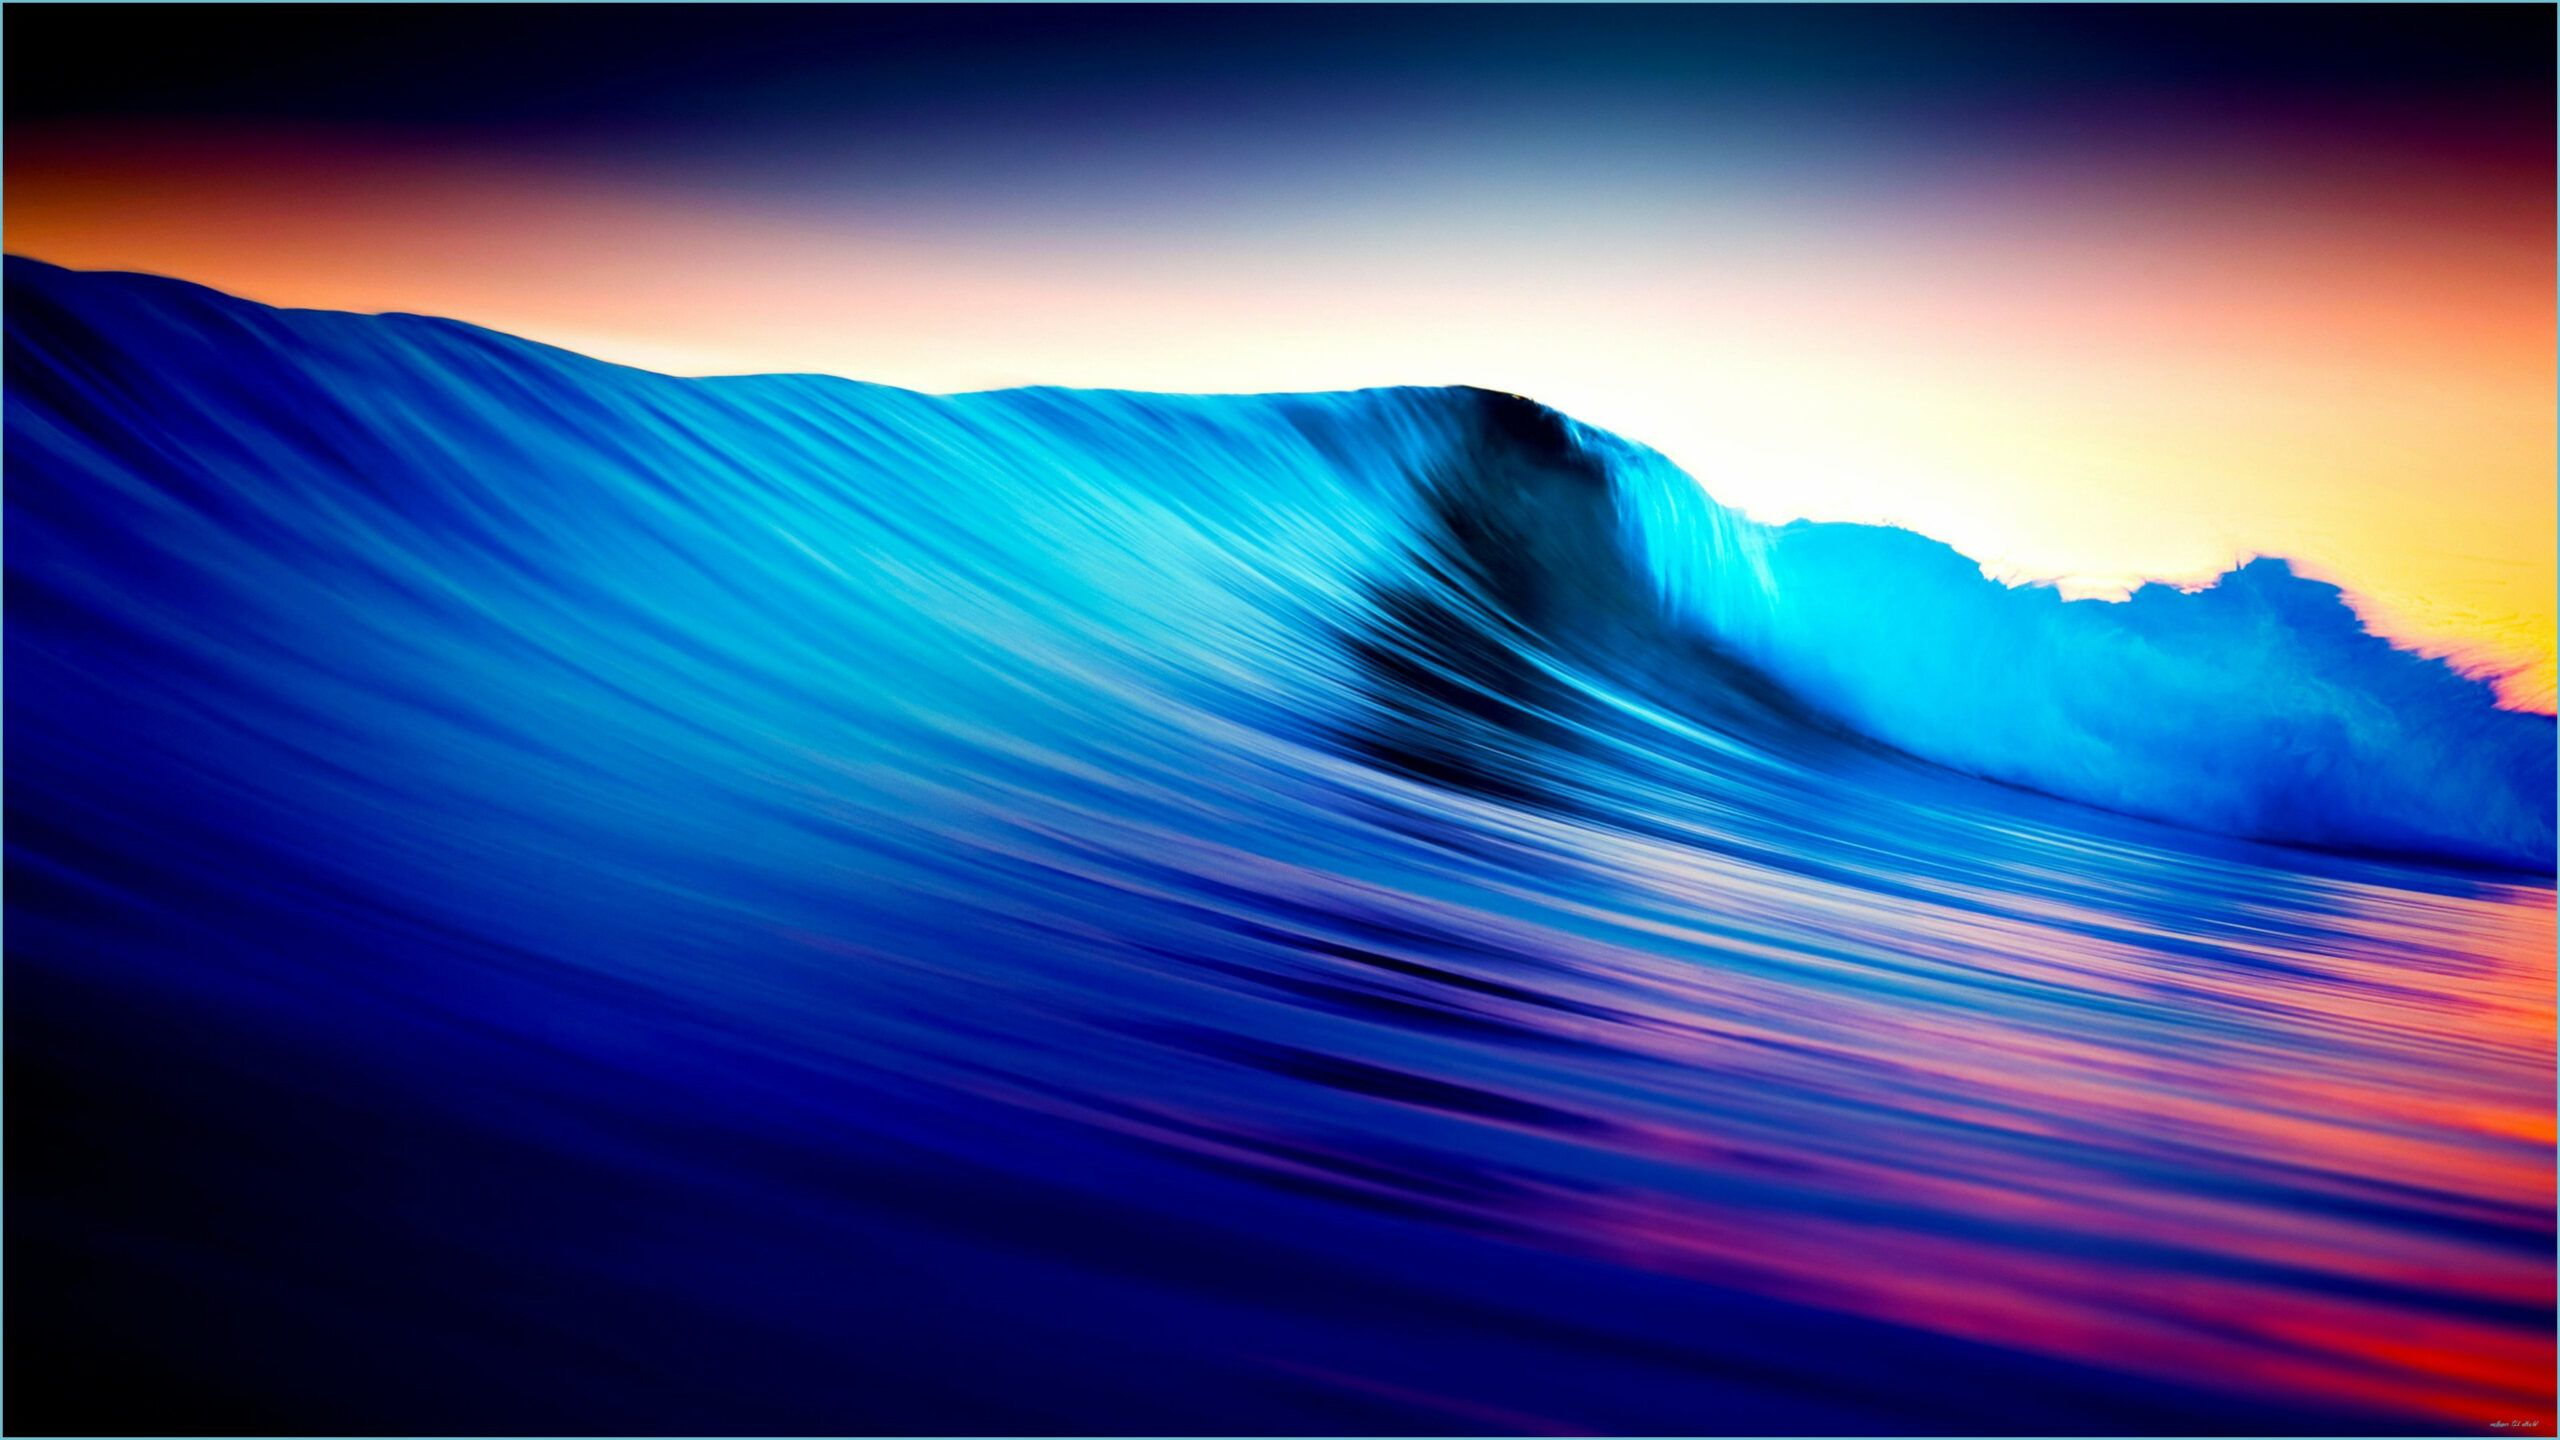 Wallpaper Hd Has Become A Very Popular Option For Many People Today With The New 4k Ultra Hd Technology Avai Waves Wallpaper Uhd Wallpaper 3840x2160 Wallpaper